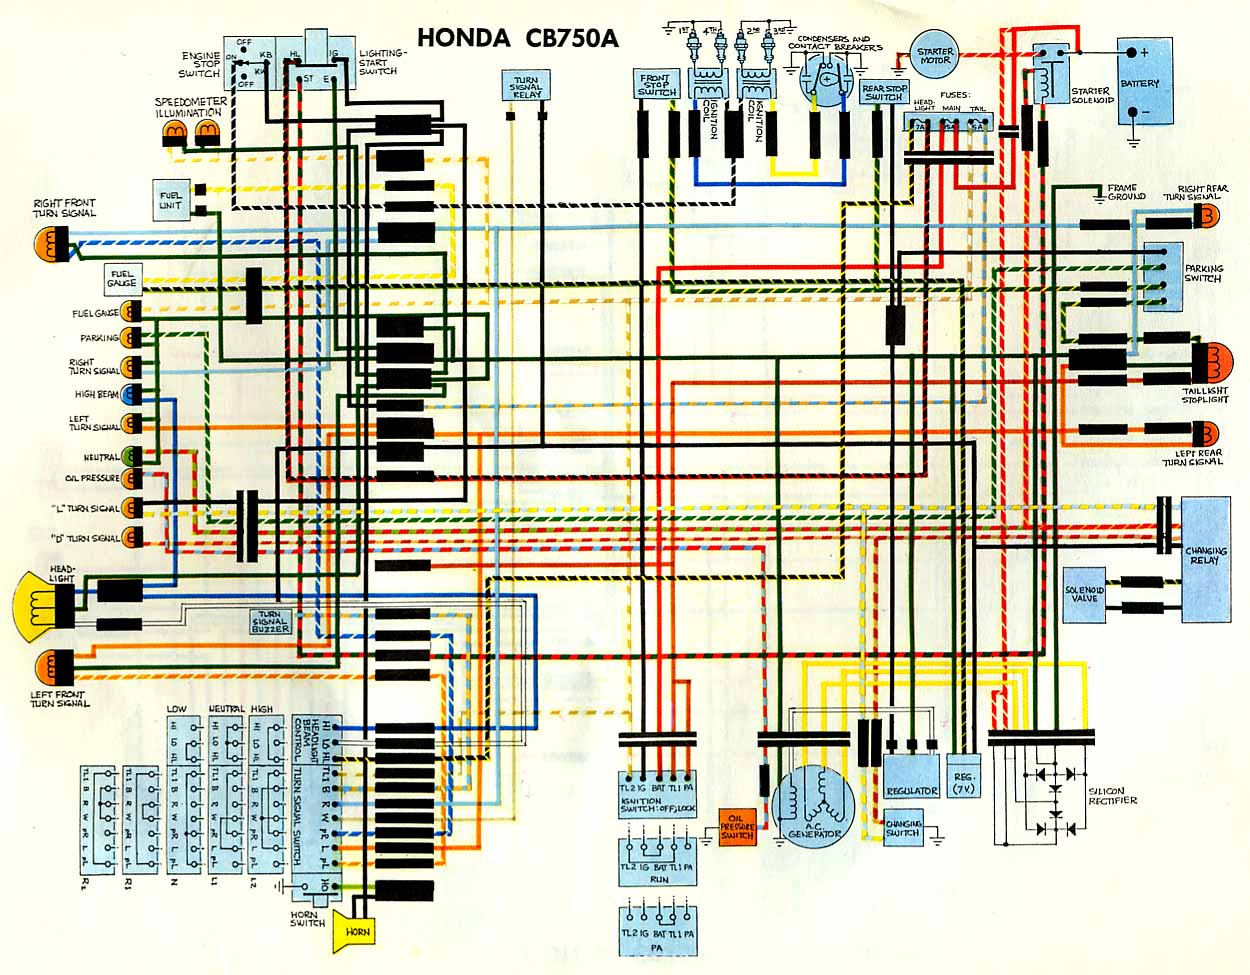 CB750auto honda cb750 wiring diagram 1970 honda cb750 wiring diagram \u2022 free 1981 honda ct70 wiring diagram at readyjetset.co